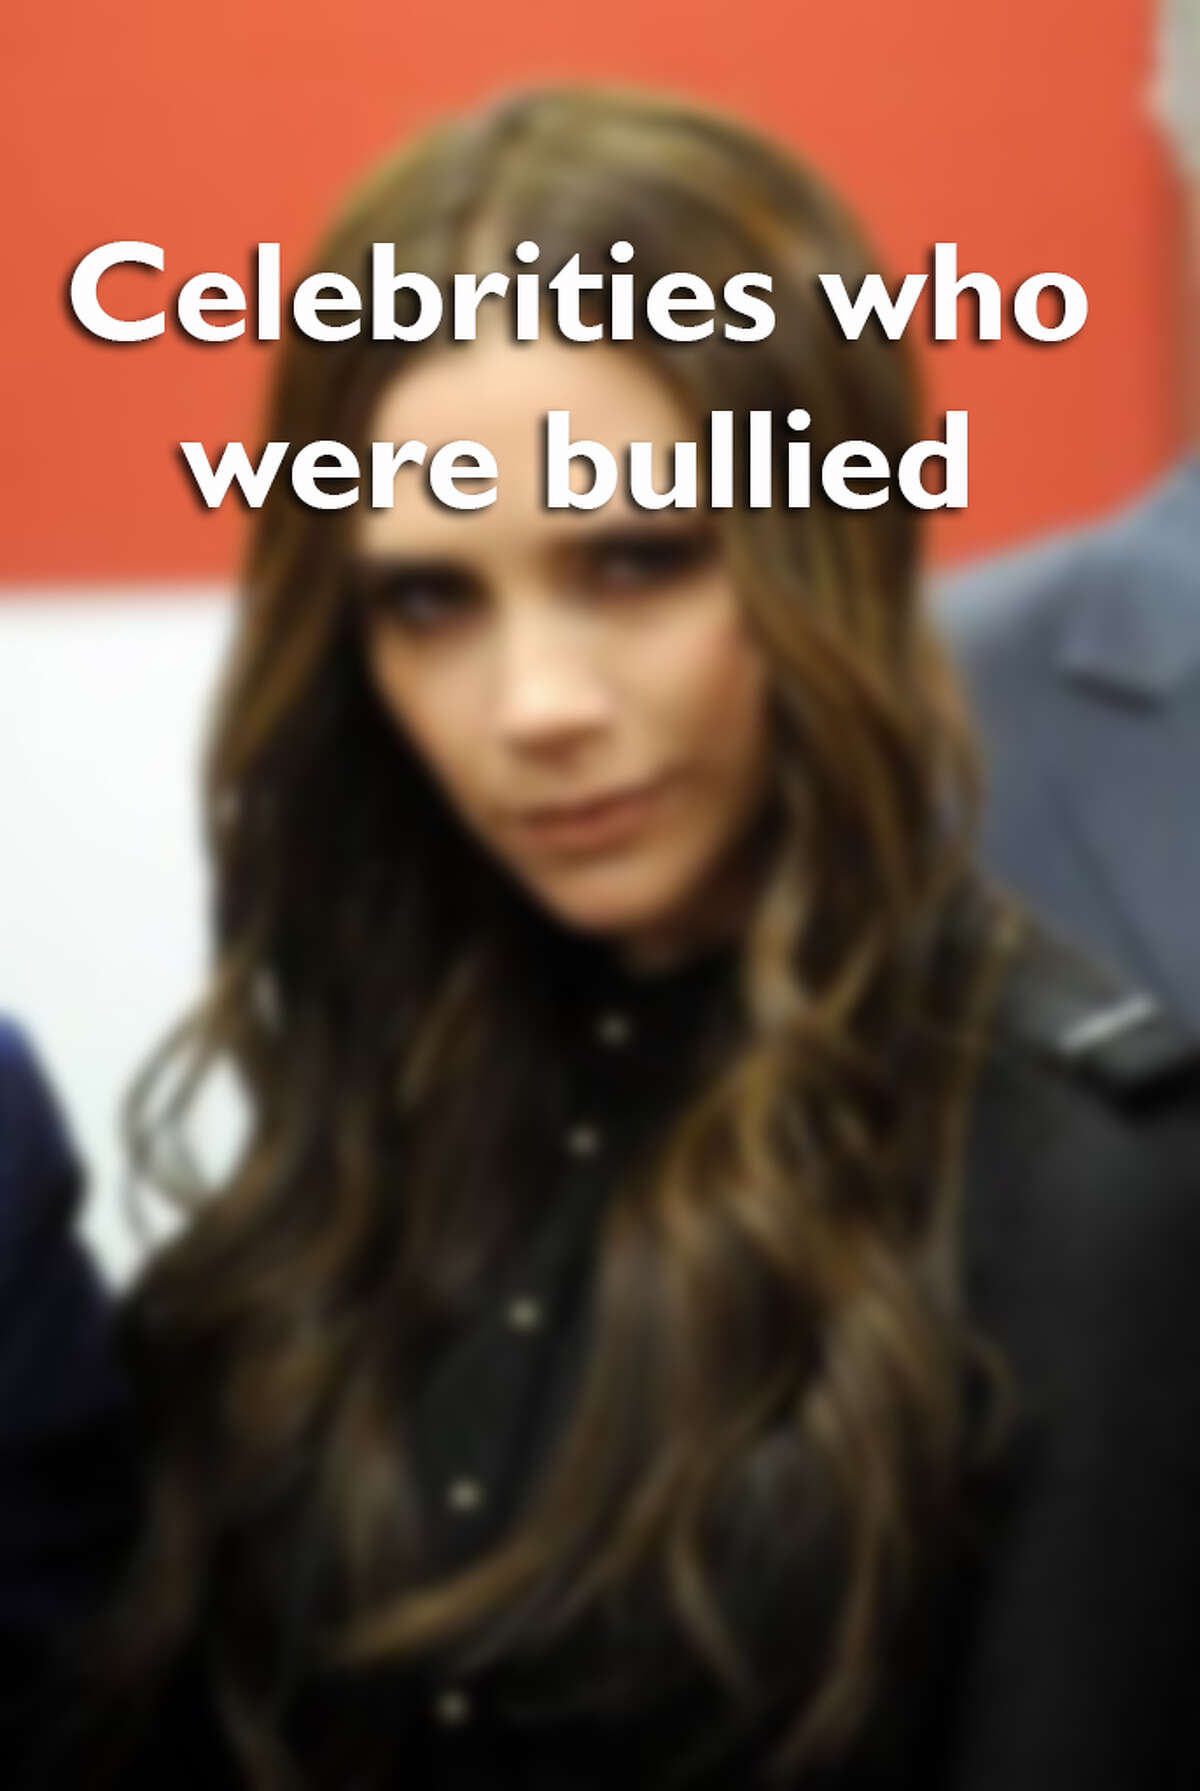 Swipe through to see photos and stories of celebrities who were bullied when they were young.